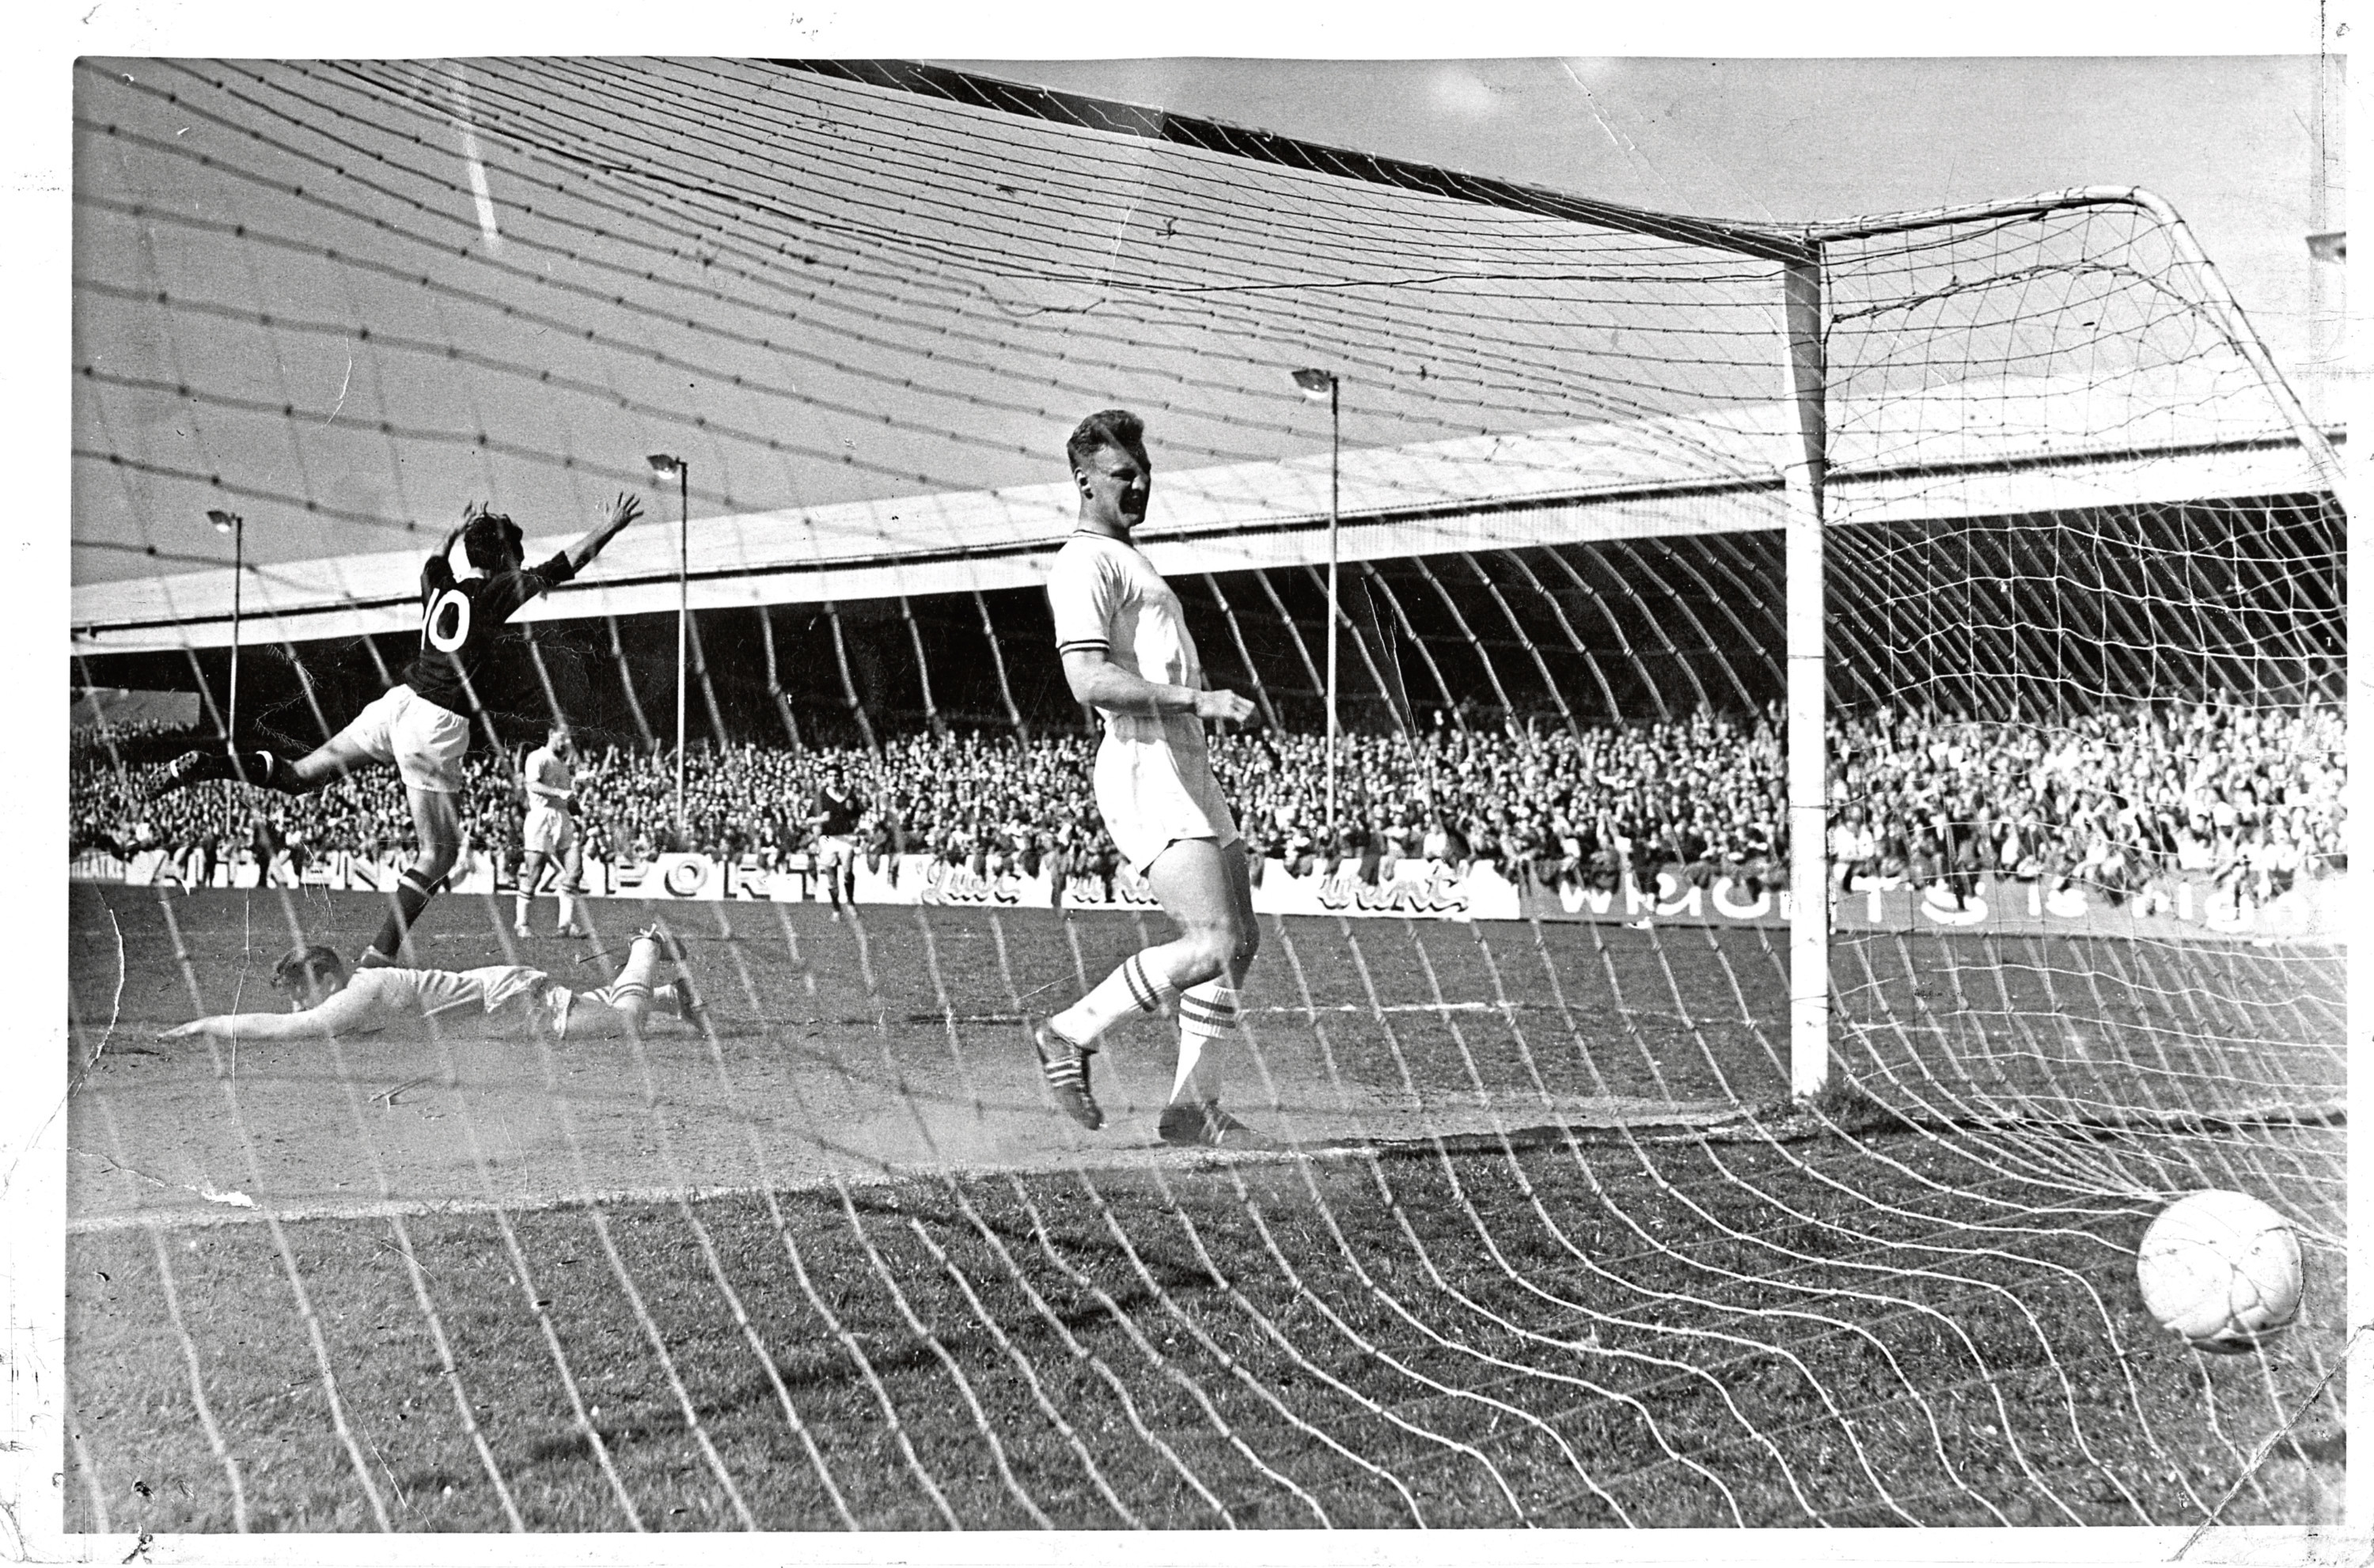 An iconic moment in 1962 as Alan Gilzean (No 10) scores to put Dundee 2-0 ahead against St Johnstone at Muirton Park as the Dark Blues sealed the First Division League title.